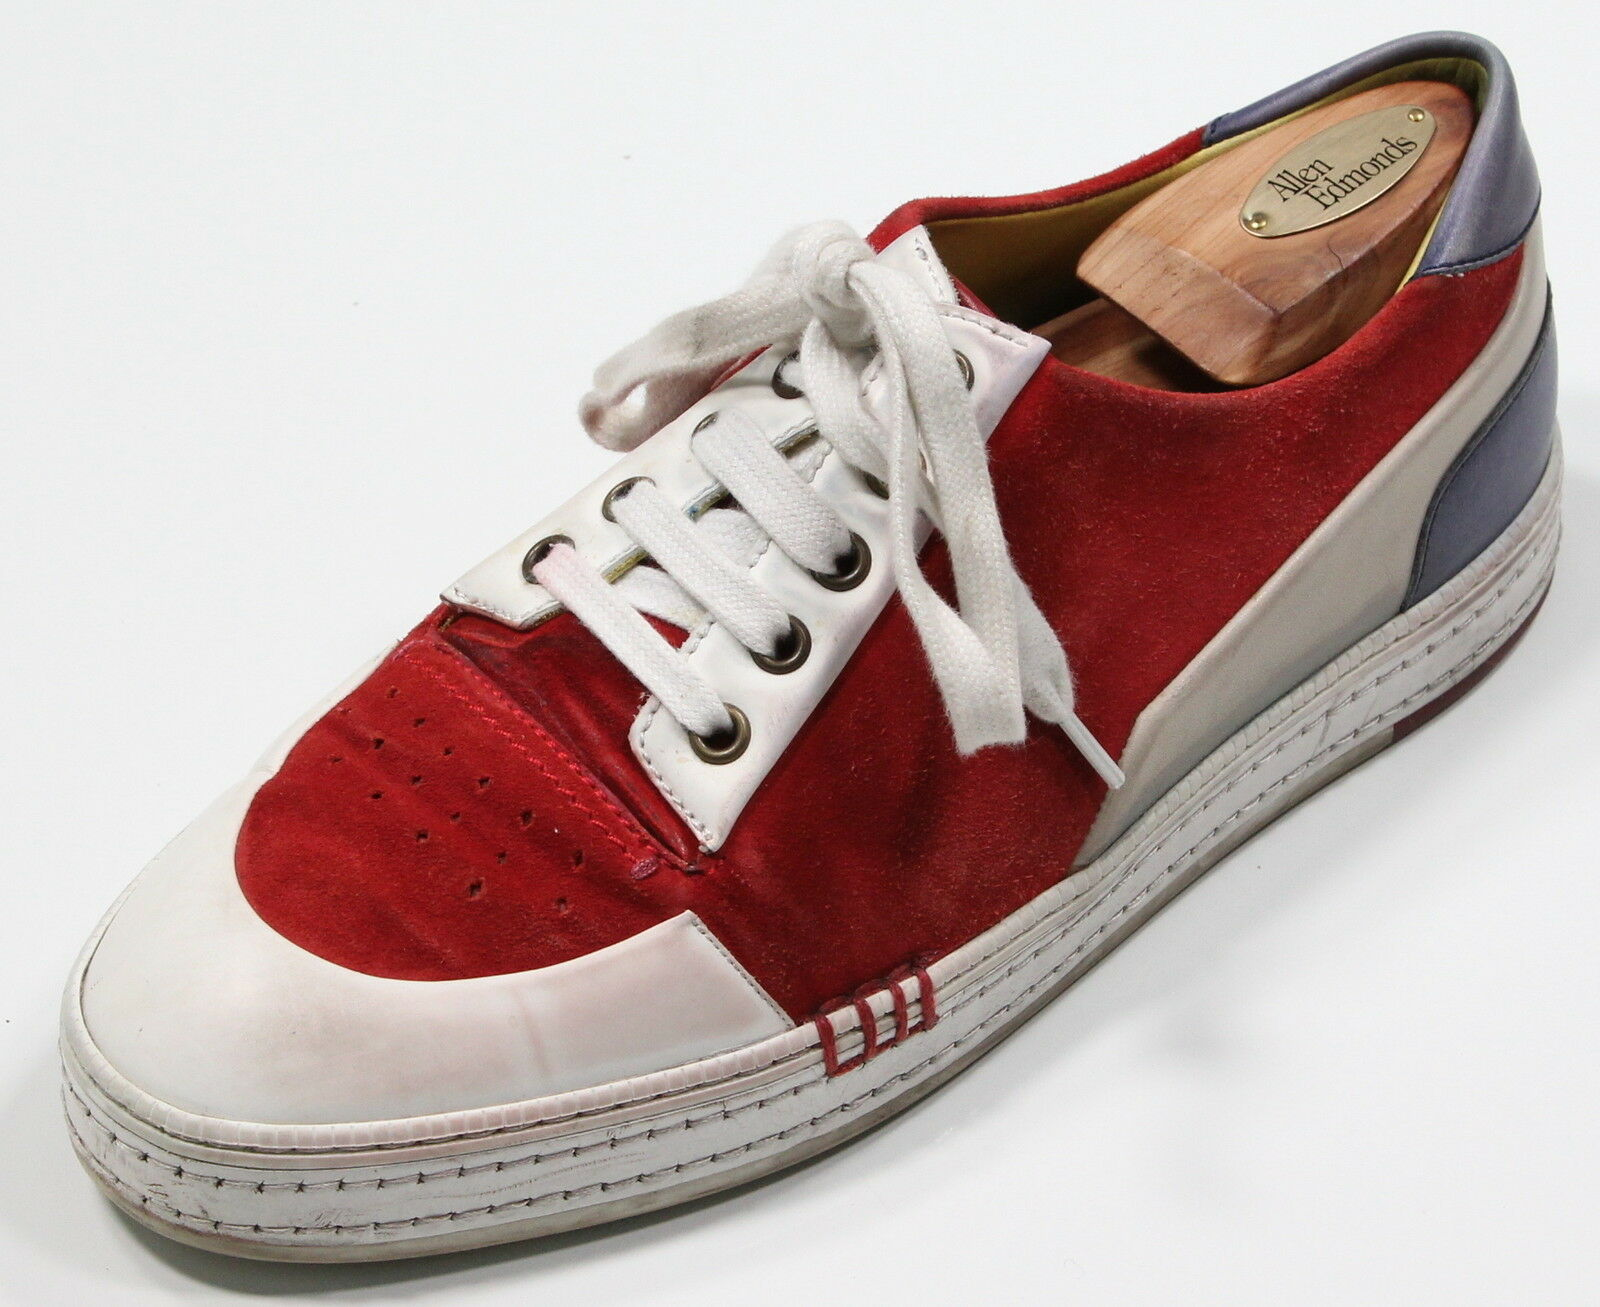 BERLUTI   1500 bluee Red 'Playfield 'Playfield 'Playfield Palermo' Leather Sneakers US 9 961721